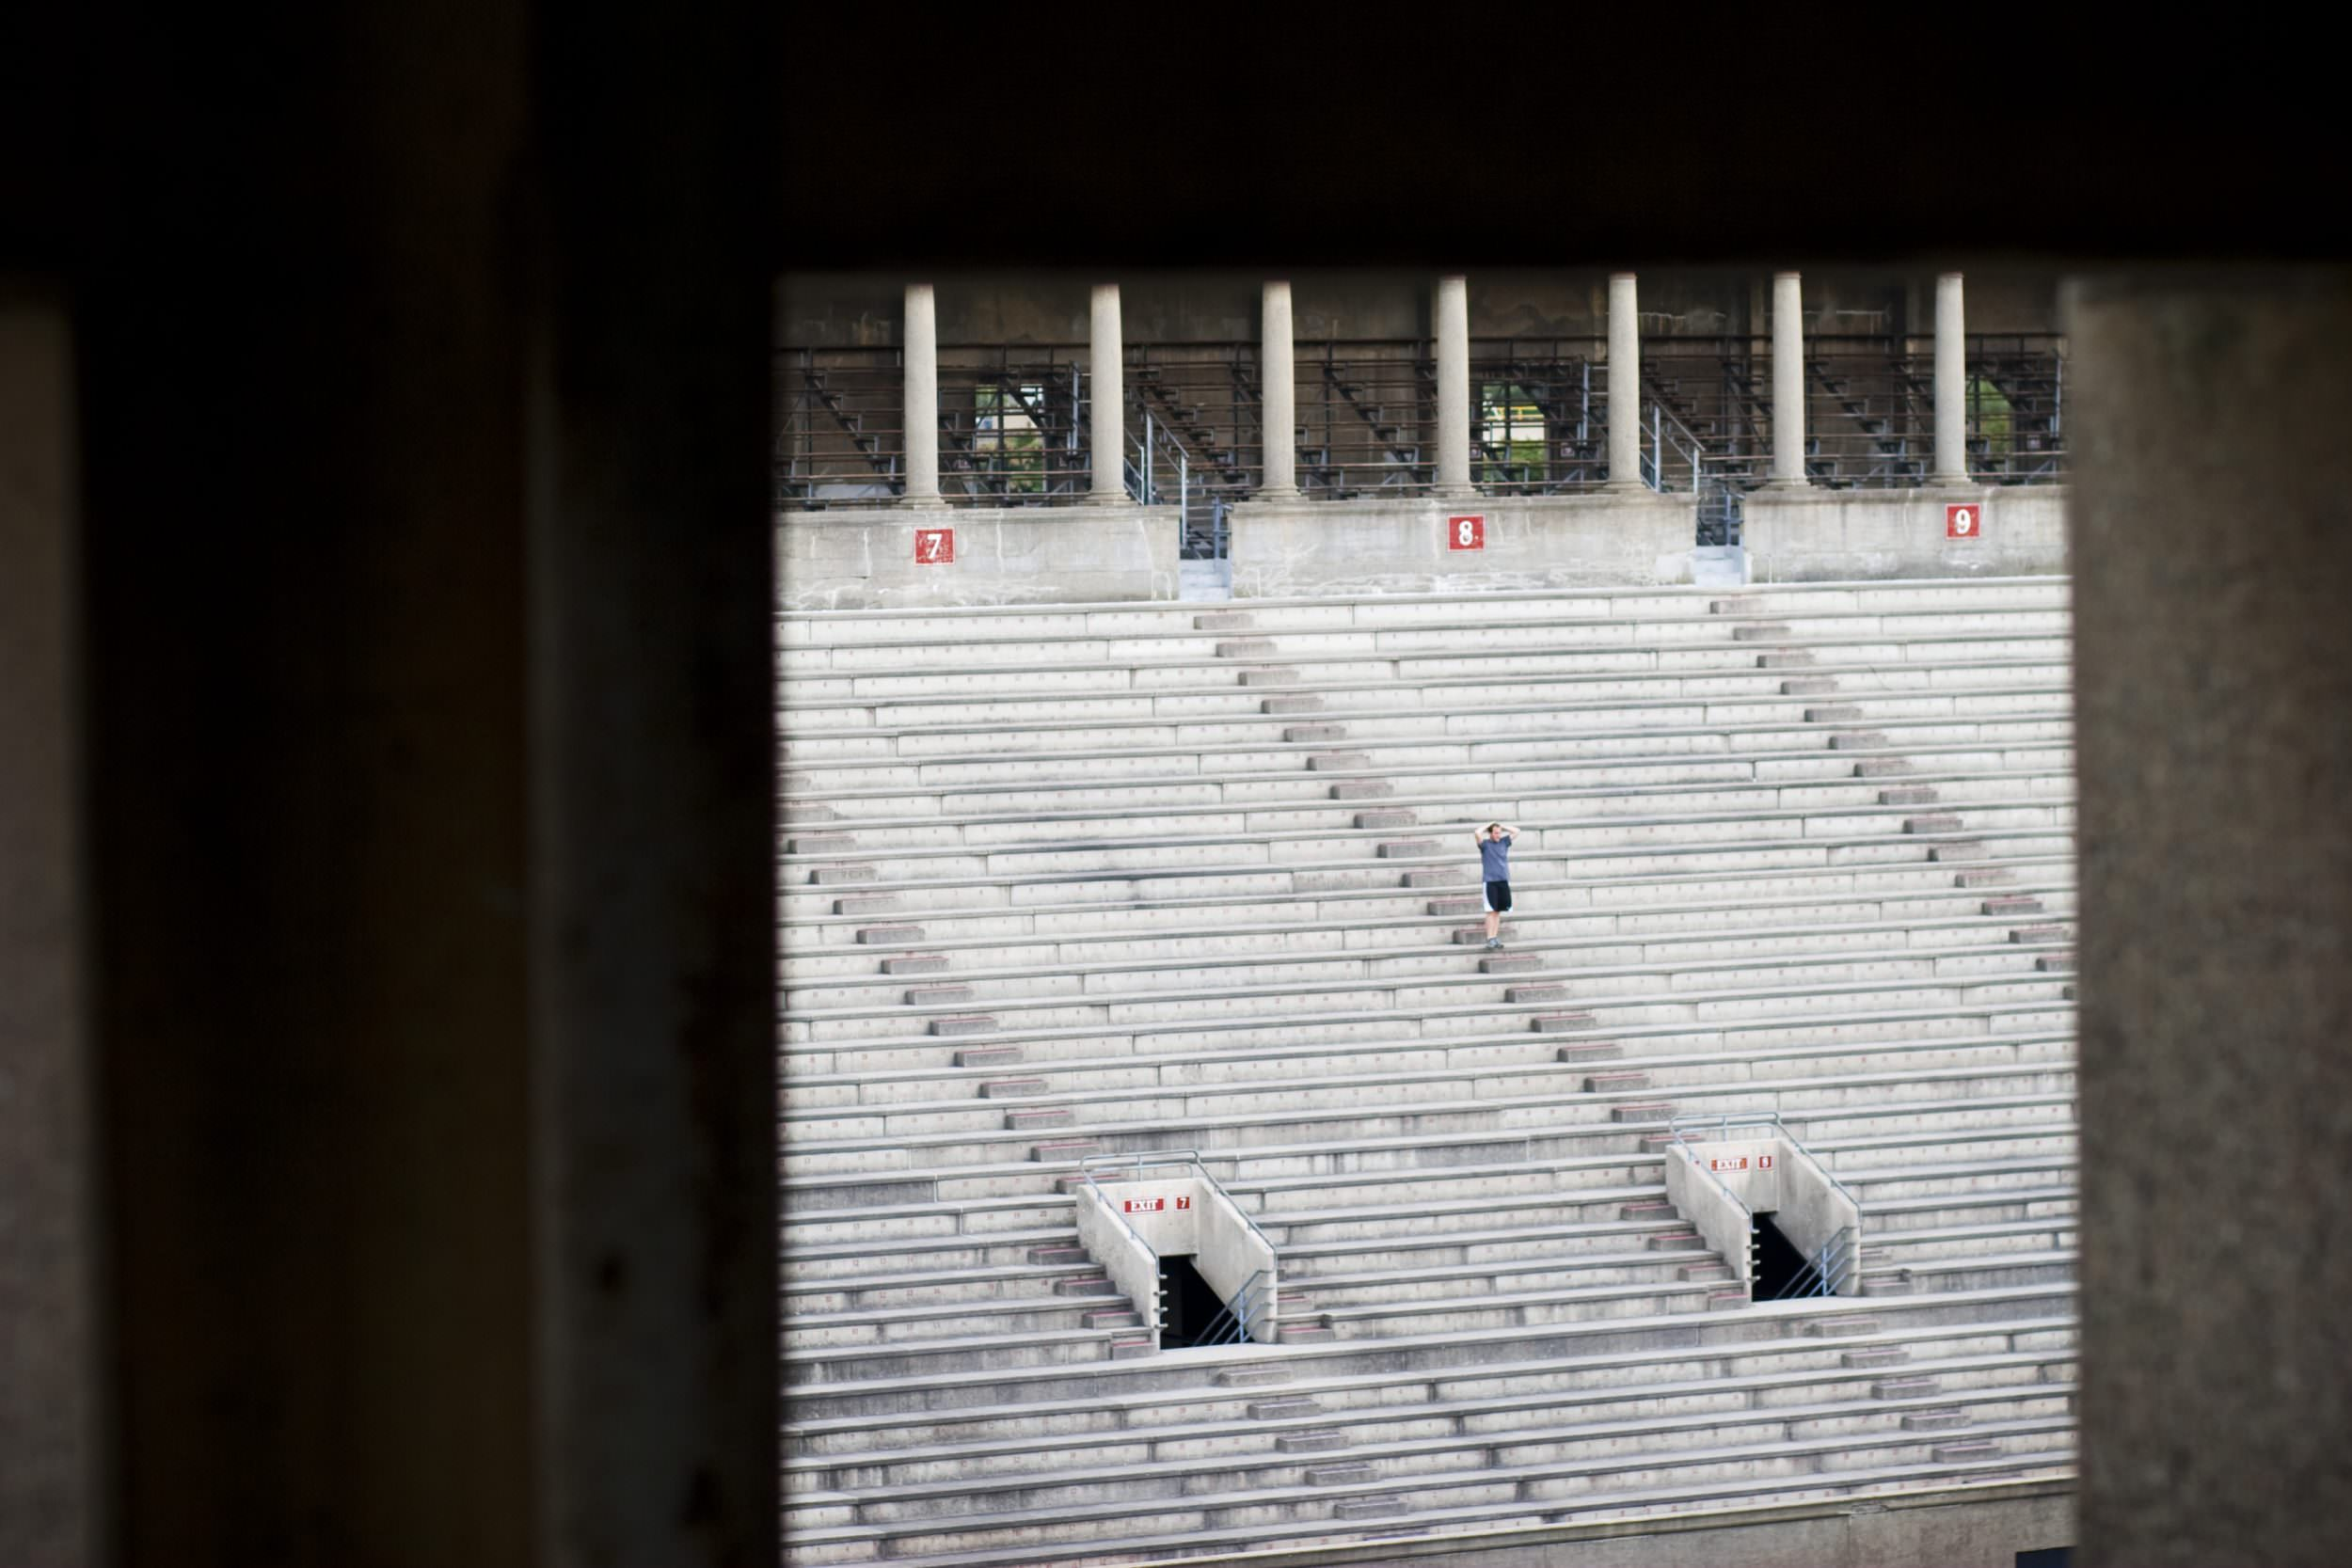 A runner stands on the steps of Harvard Stadium stairs.